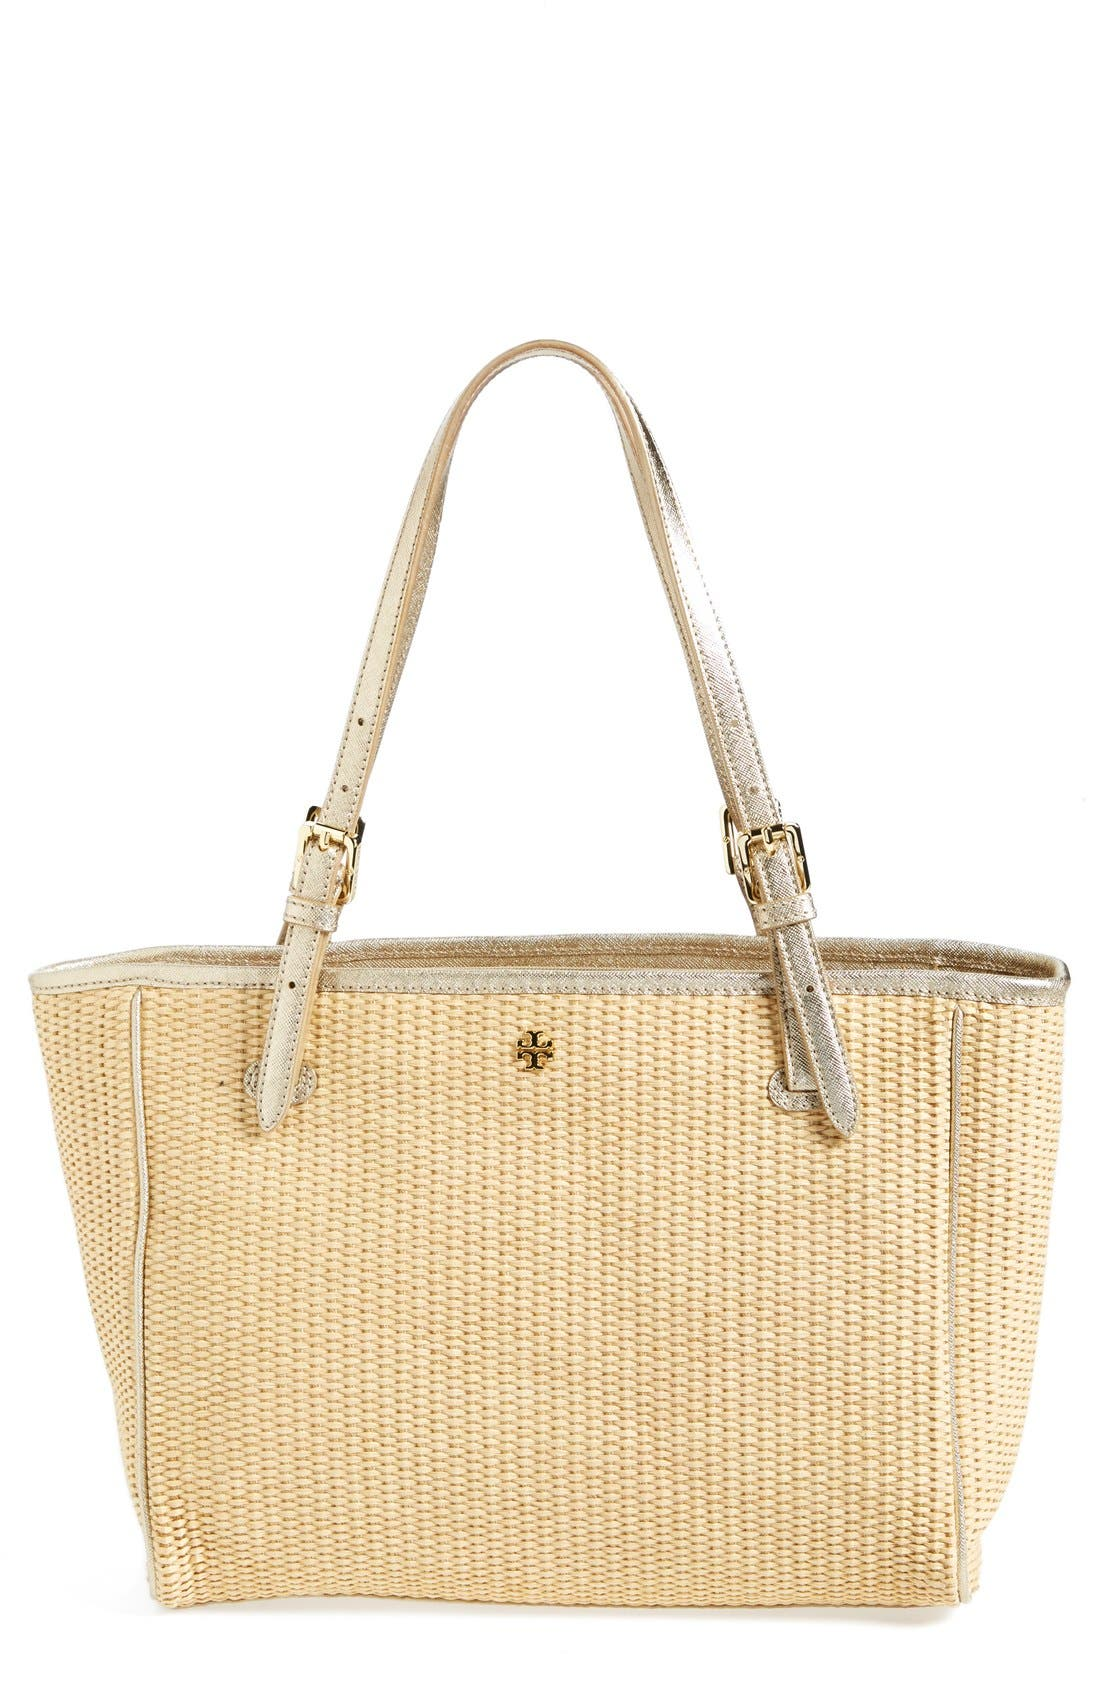 Main Image - Tory Burch 'Small York' Straw Buckle Tote